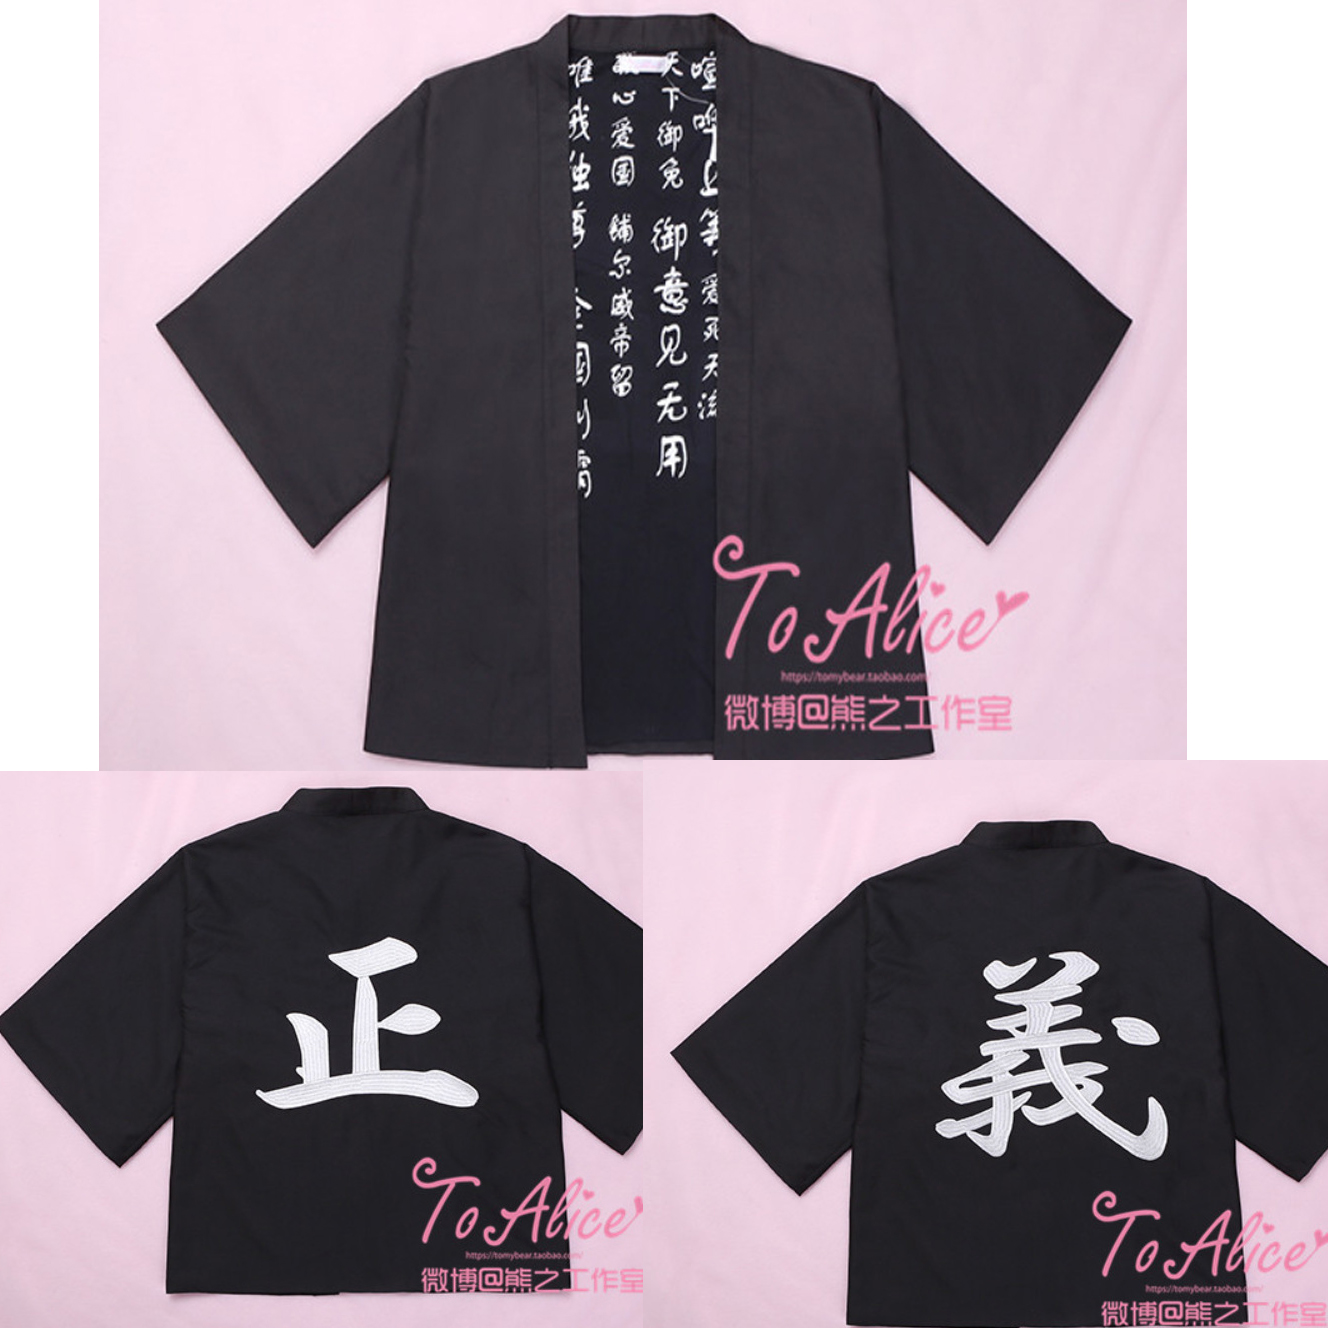 Blouses & Shirts Punctual Japanese Chinese Letter Embroidery Bad/poster/justice Print Funny Kimono Loose Blouse Streetwear Hip Hop Punk Top Shirt Harajuku Price Remains Stable